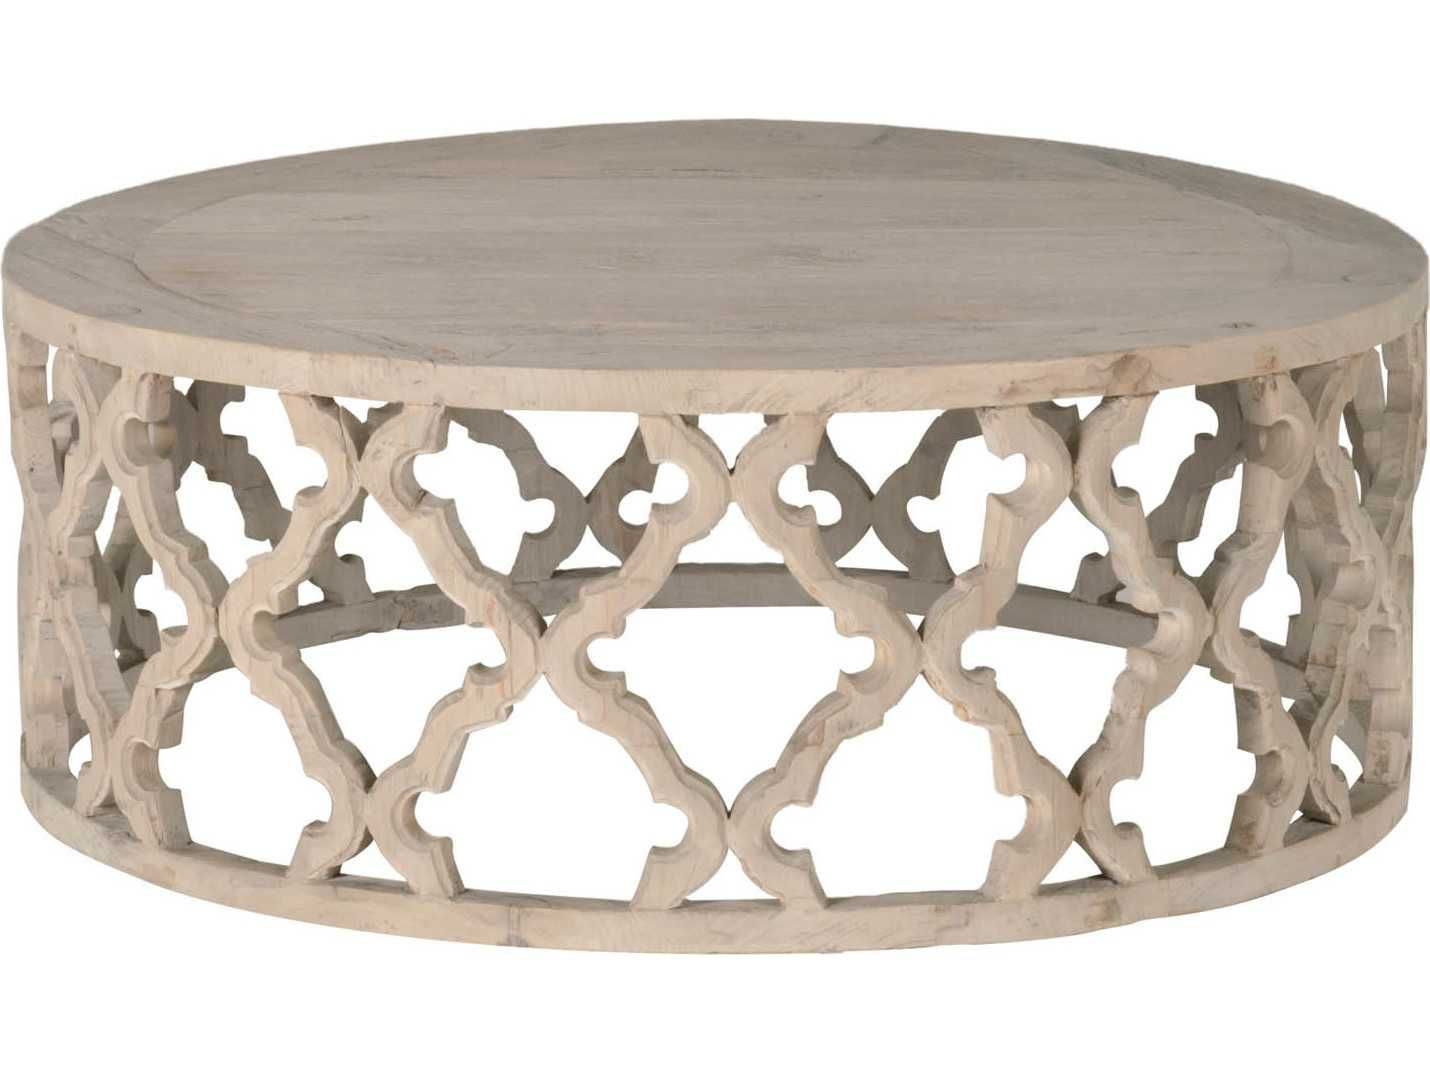 Shop By Brand Elm Coffee Table Coffee Table Wood Coffee Table [ 1073 x 1430 Pixel ]